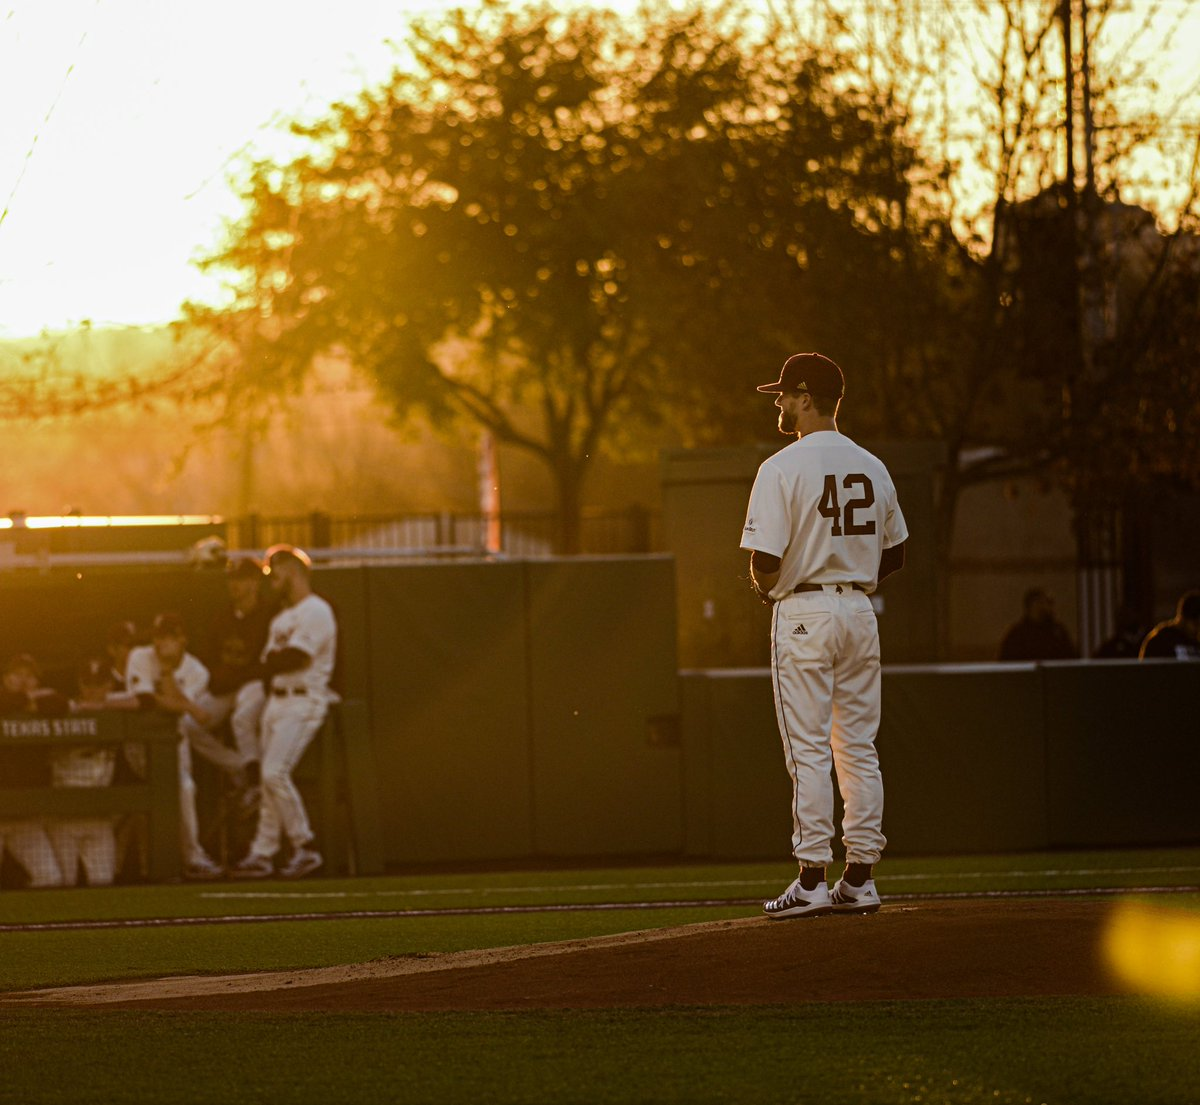 Ready for @TxStateBaseball sunsets again. #EatEmUp